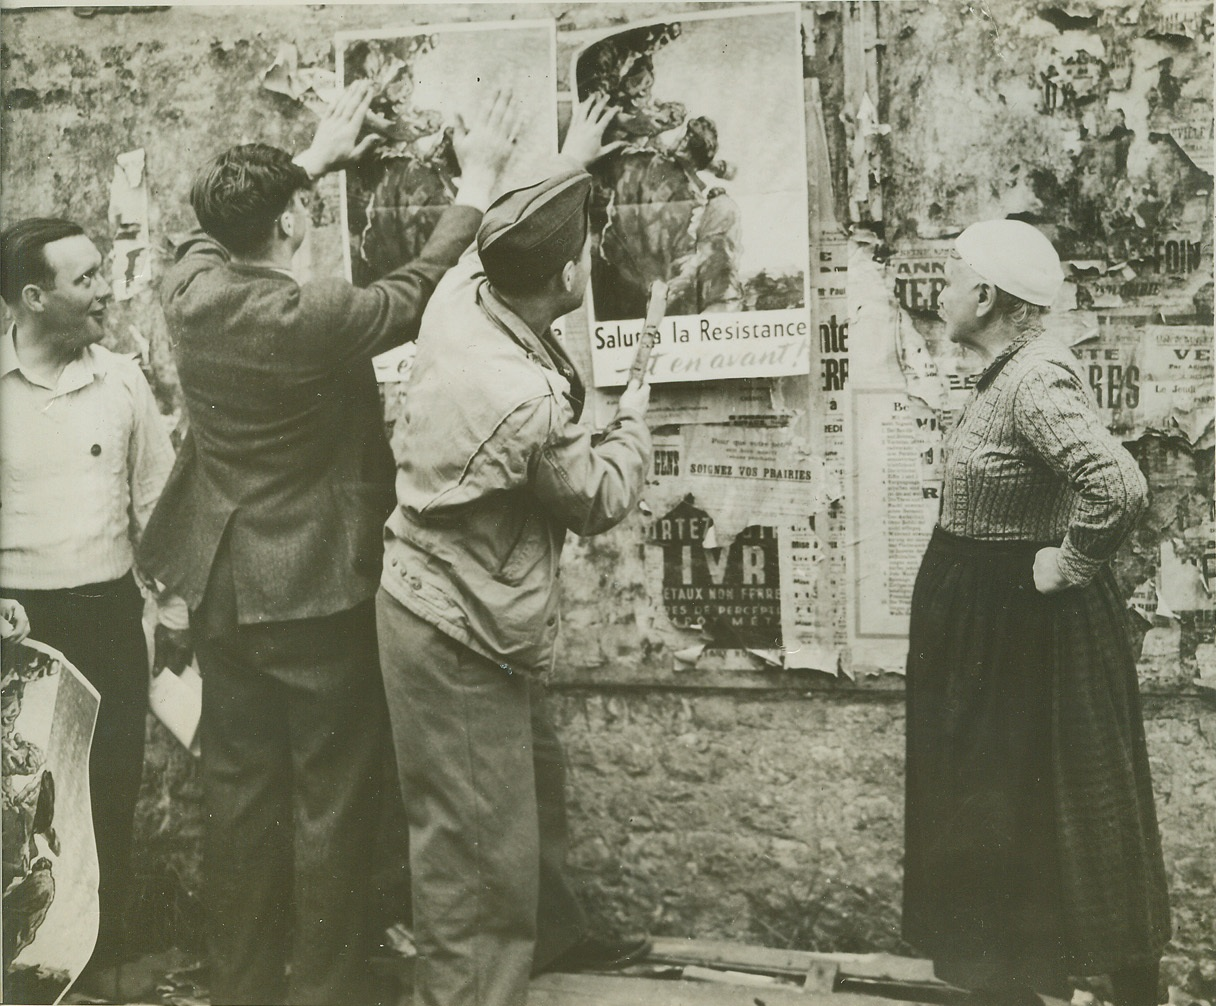 Down With the Old Up With the Free, 8/22/1944. FRANCE -- Residents of Columbierre help an American soldier cover the remnants of Nazi display propaganda with Allied posters. An elderly French woman surveys the work with satisfaction. Credit (OWI Photo from ACME);